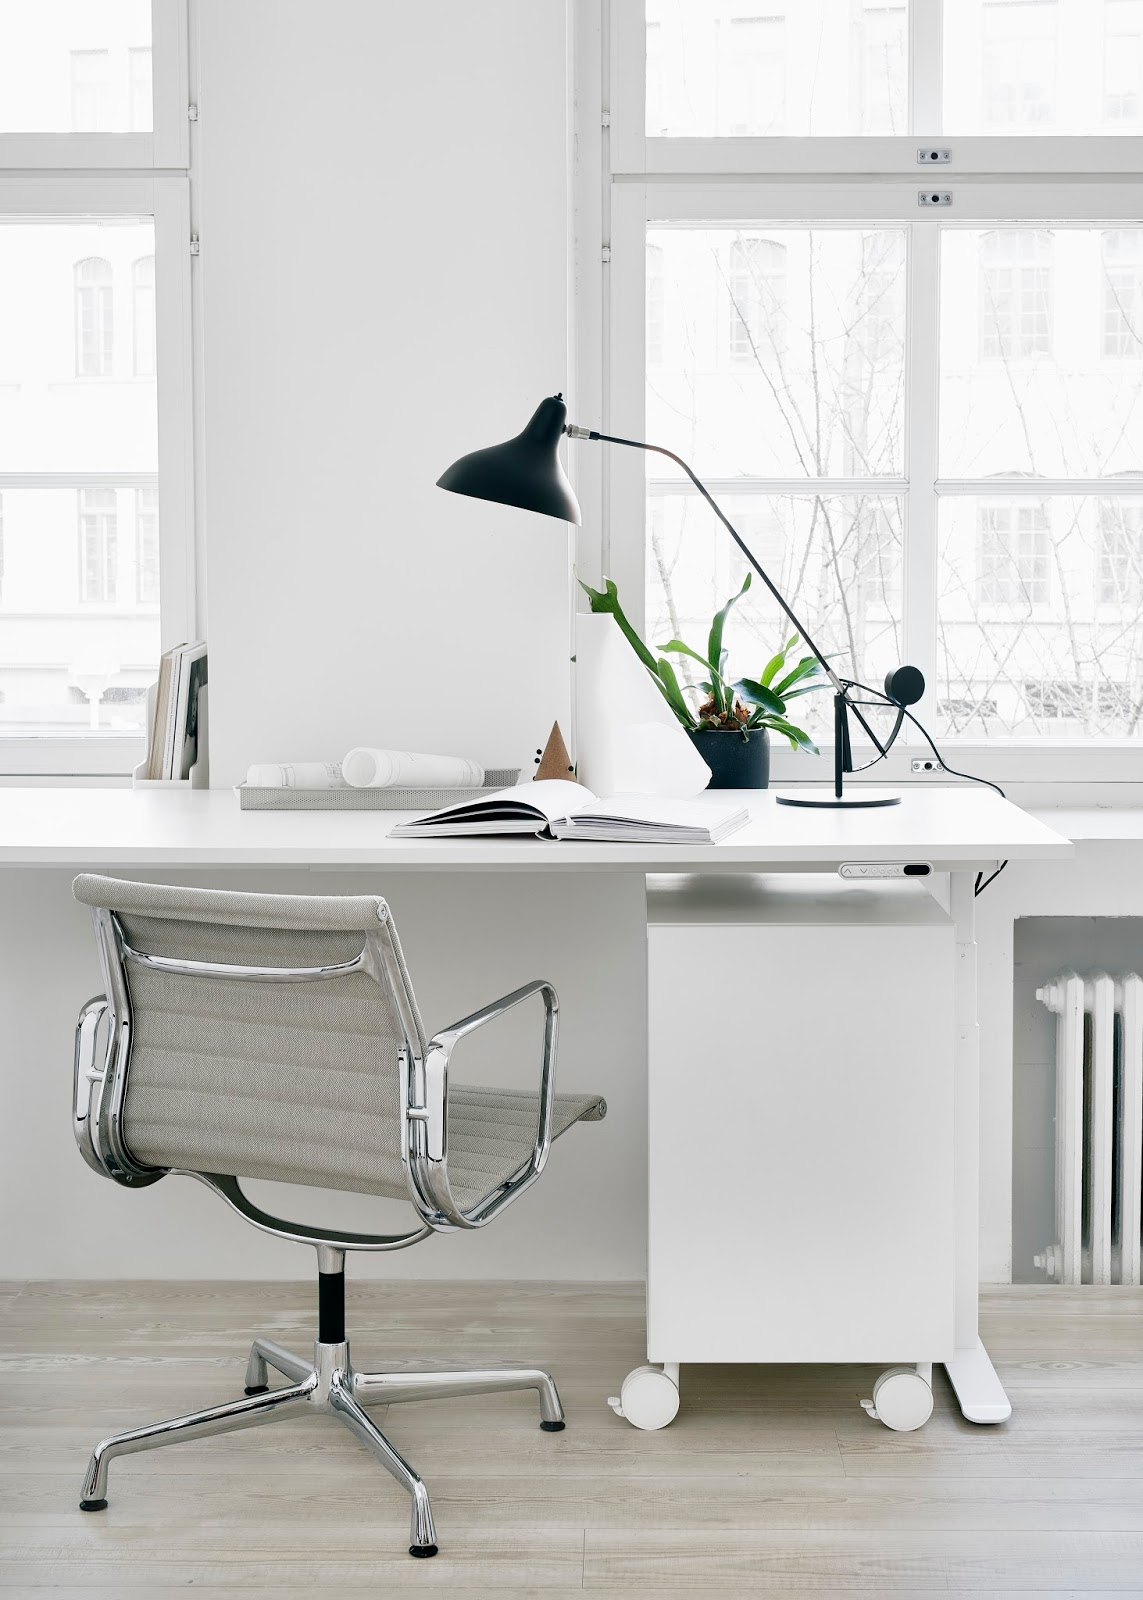 Styling and photography by Riikka Kantinkoski  for Finnish Design Shop